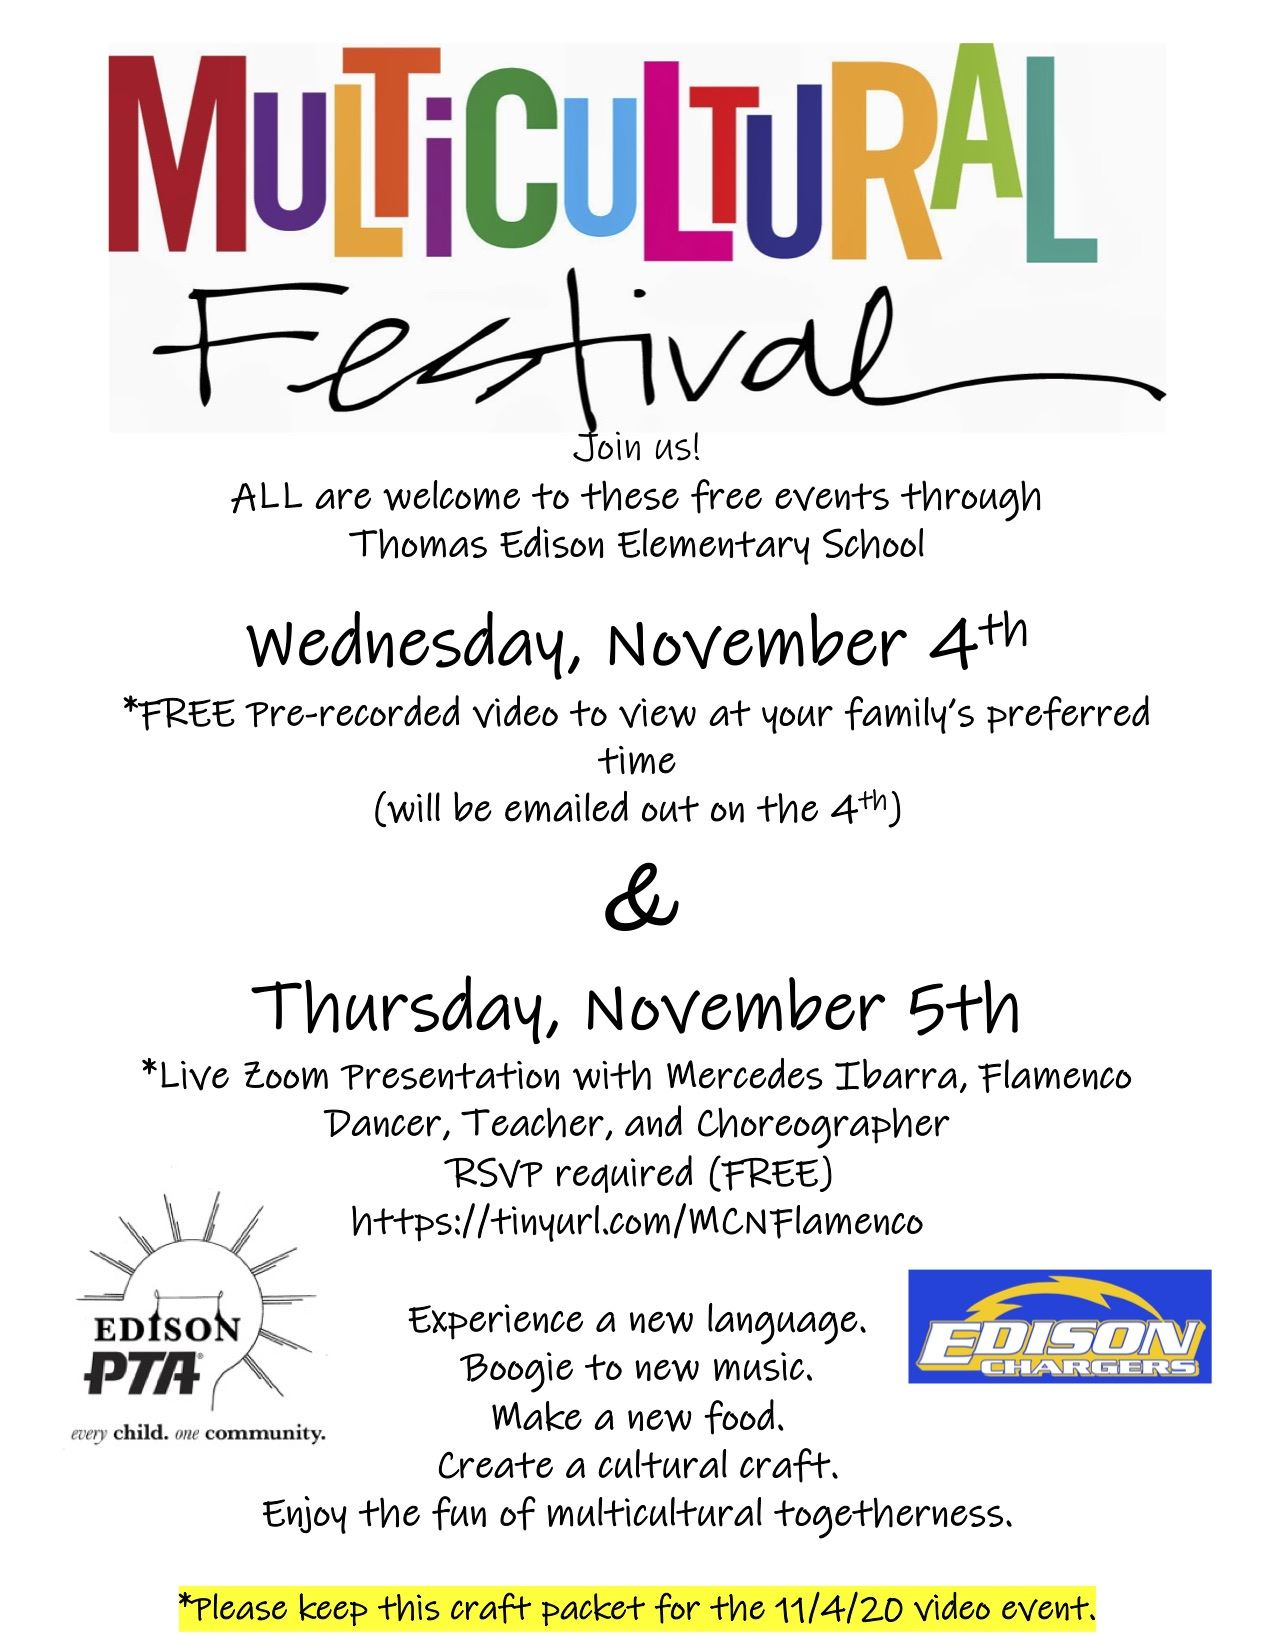 Multicultural night flier to link